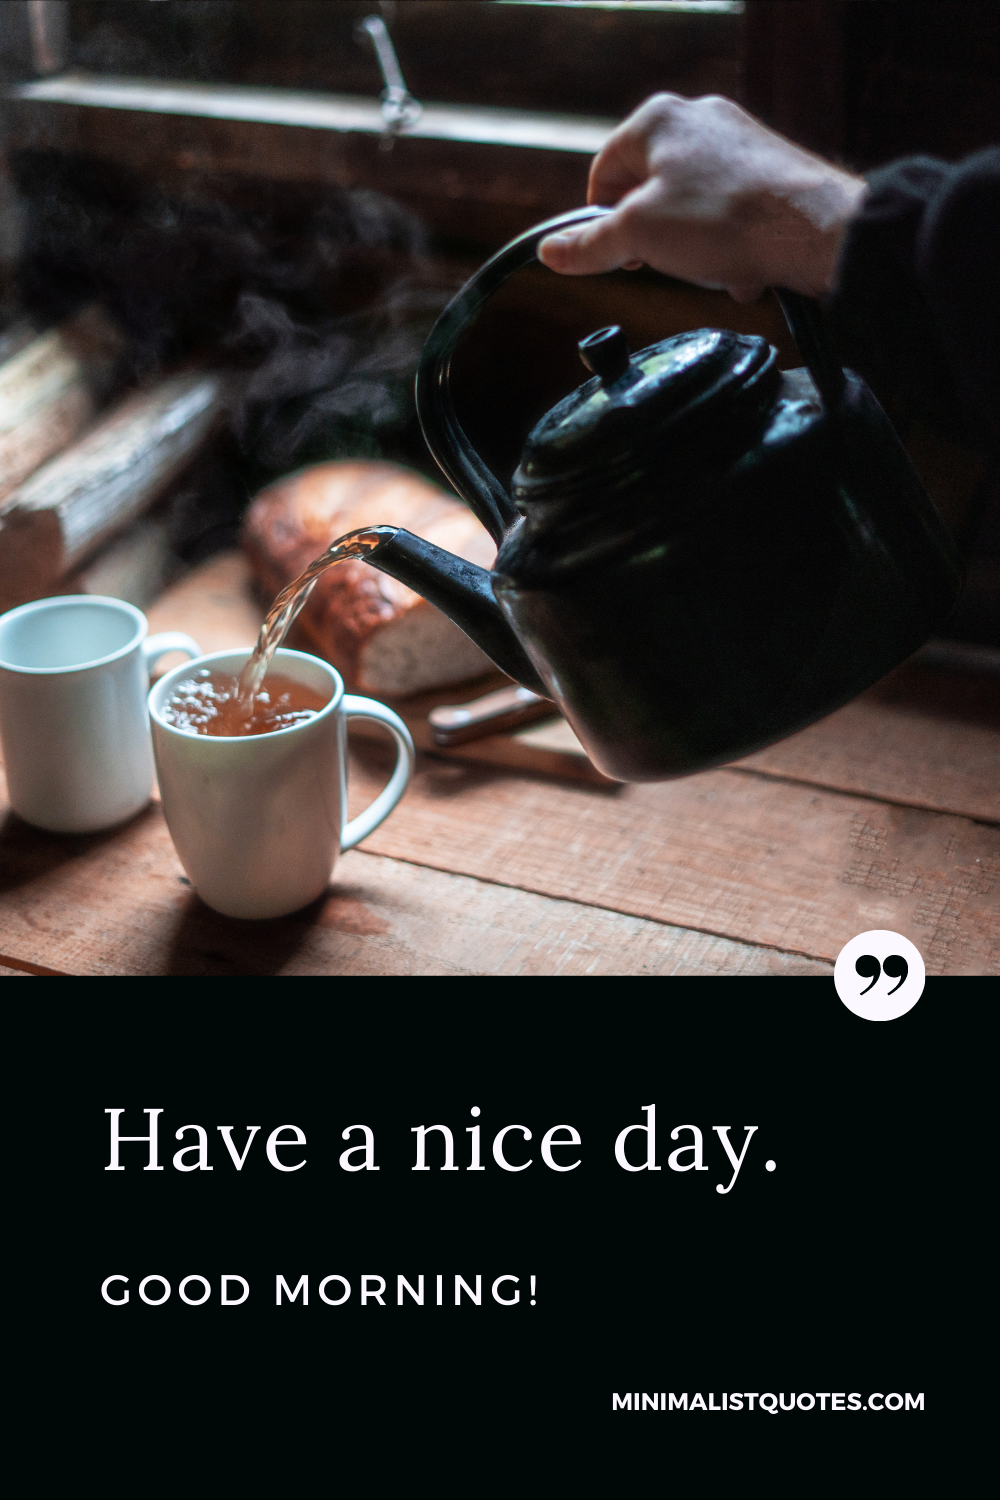 Good Morning: Have a nice day.